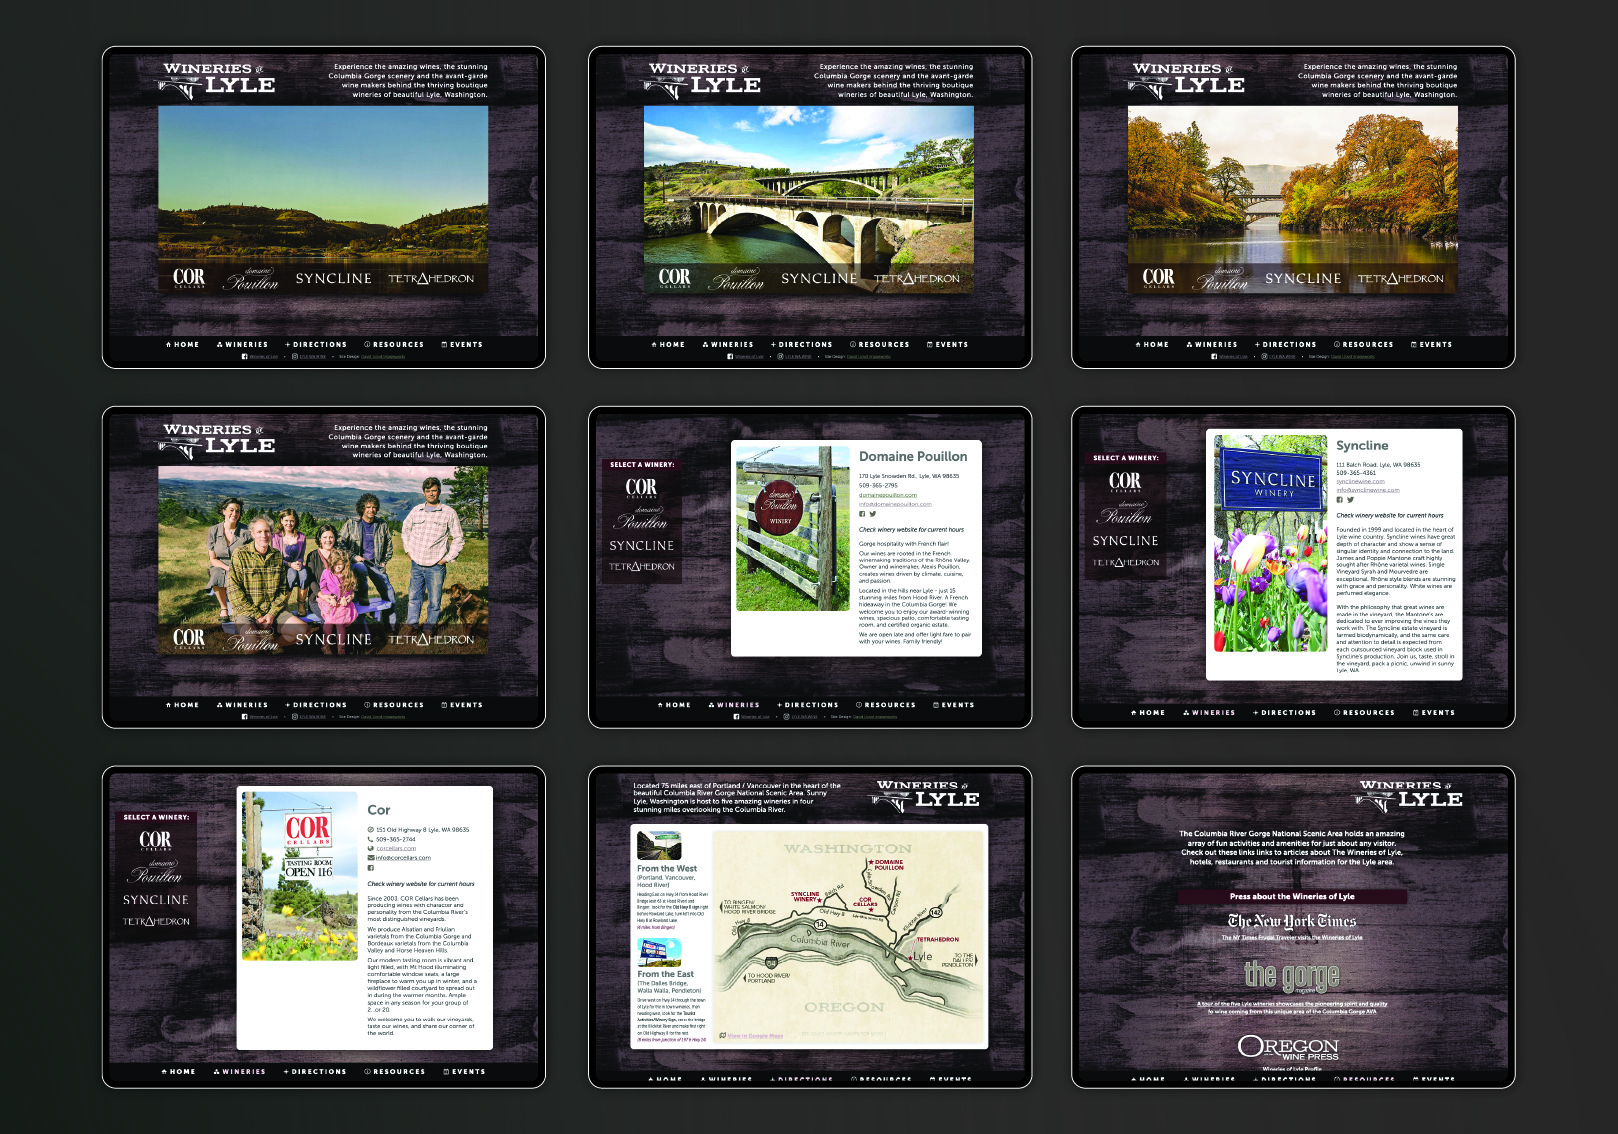 Print and web work supporting 5 amazing wineries in the burgeoning Lyle Washington area of the Columbia Gorge wine AVA.